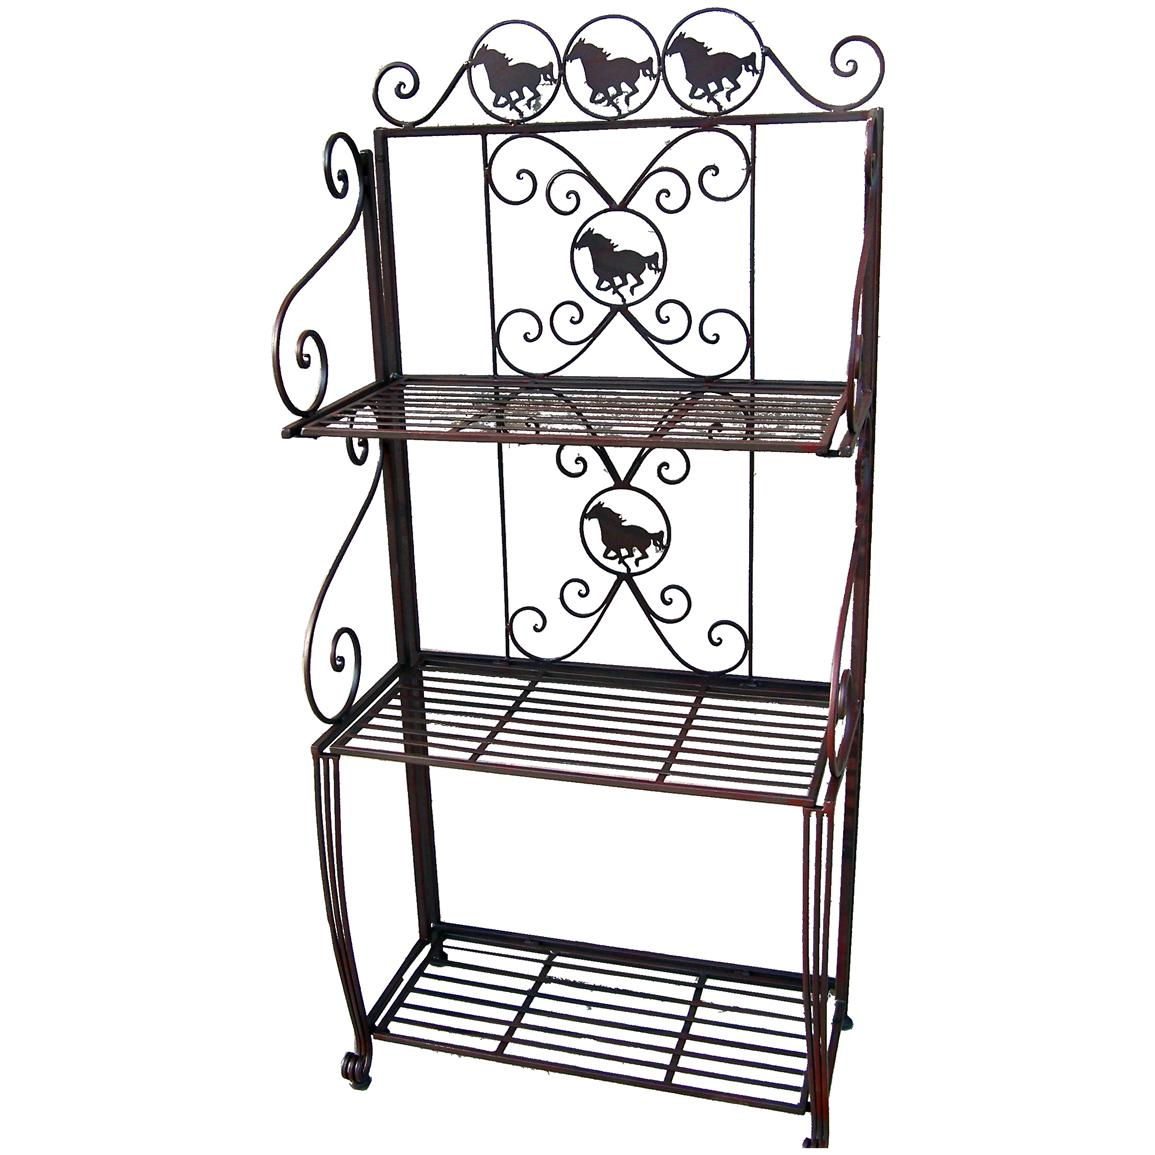 DeLeon Collections Metal 3 Tier Rack With Horse Design